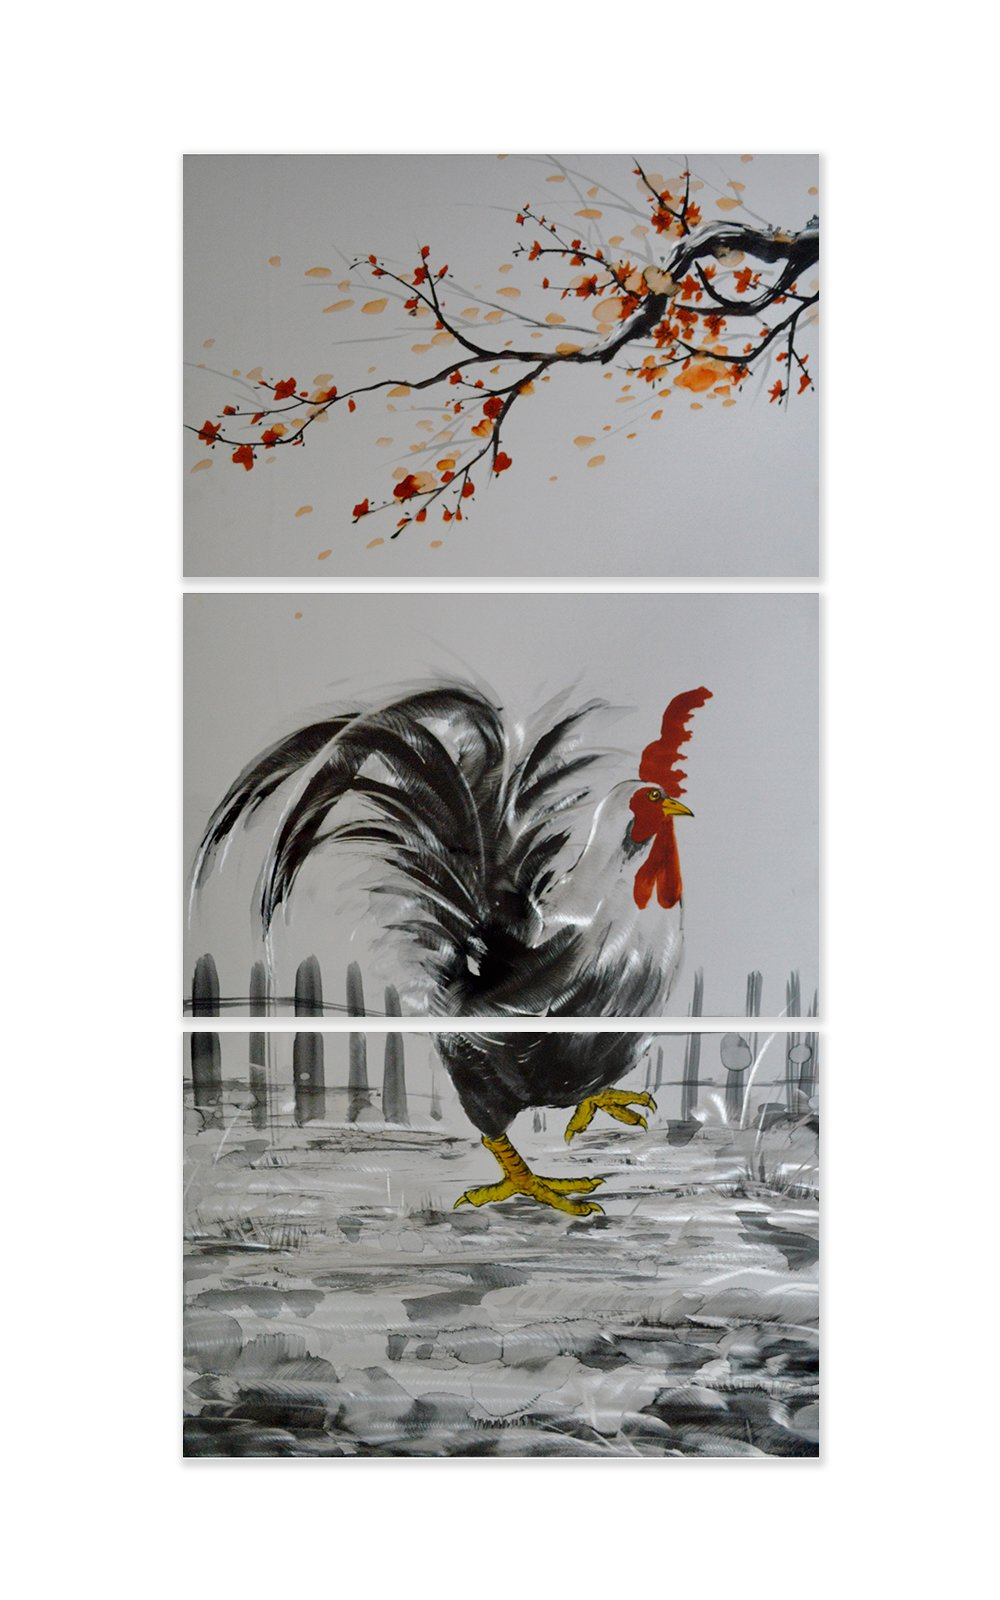 Luvurwall 3 Panel Rooster Metal Wall Art, Metal Wall Art - Luvurwall